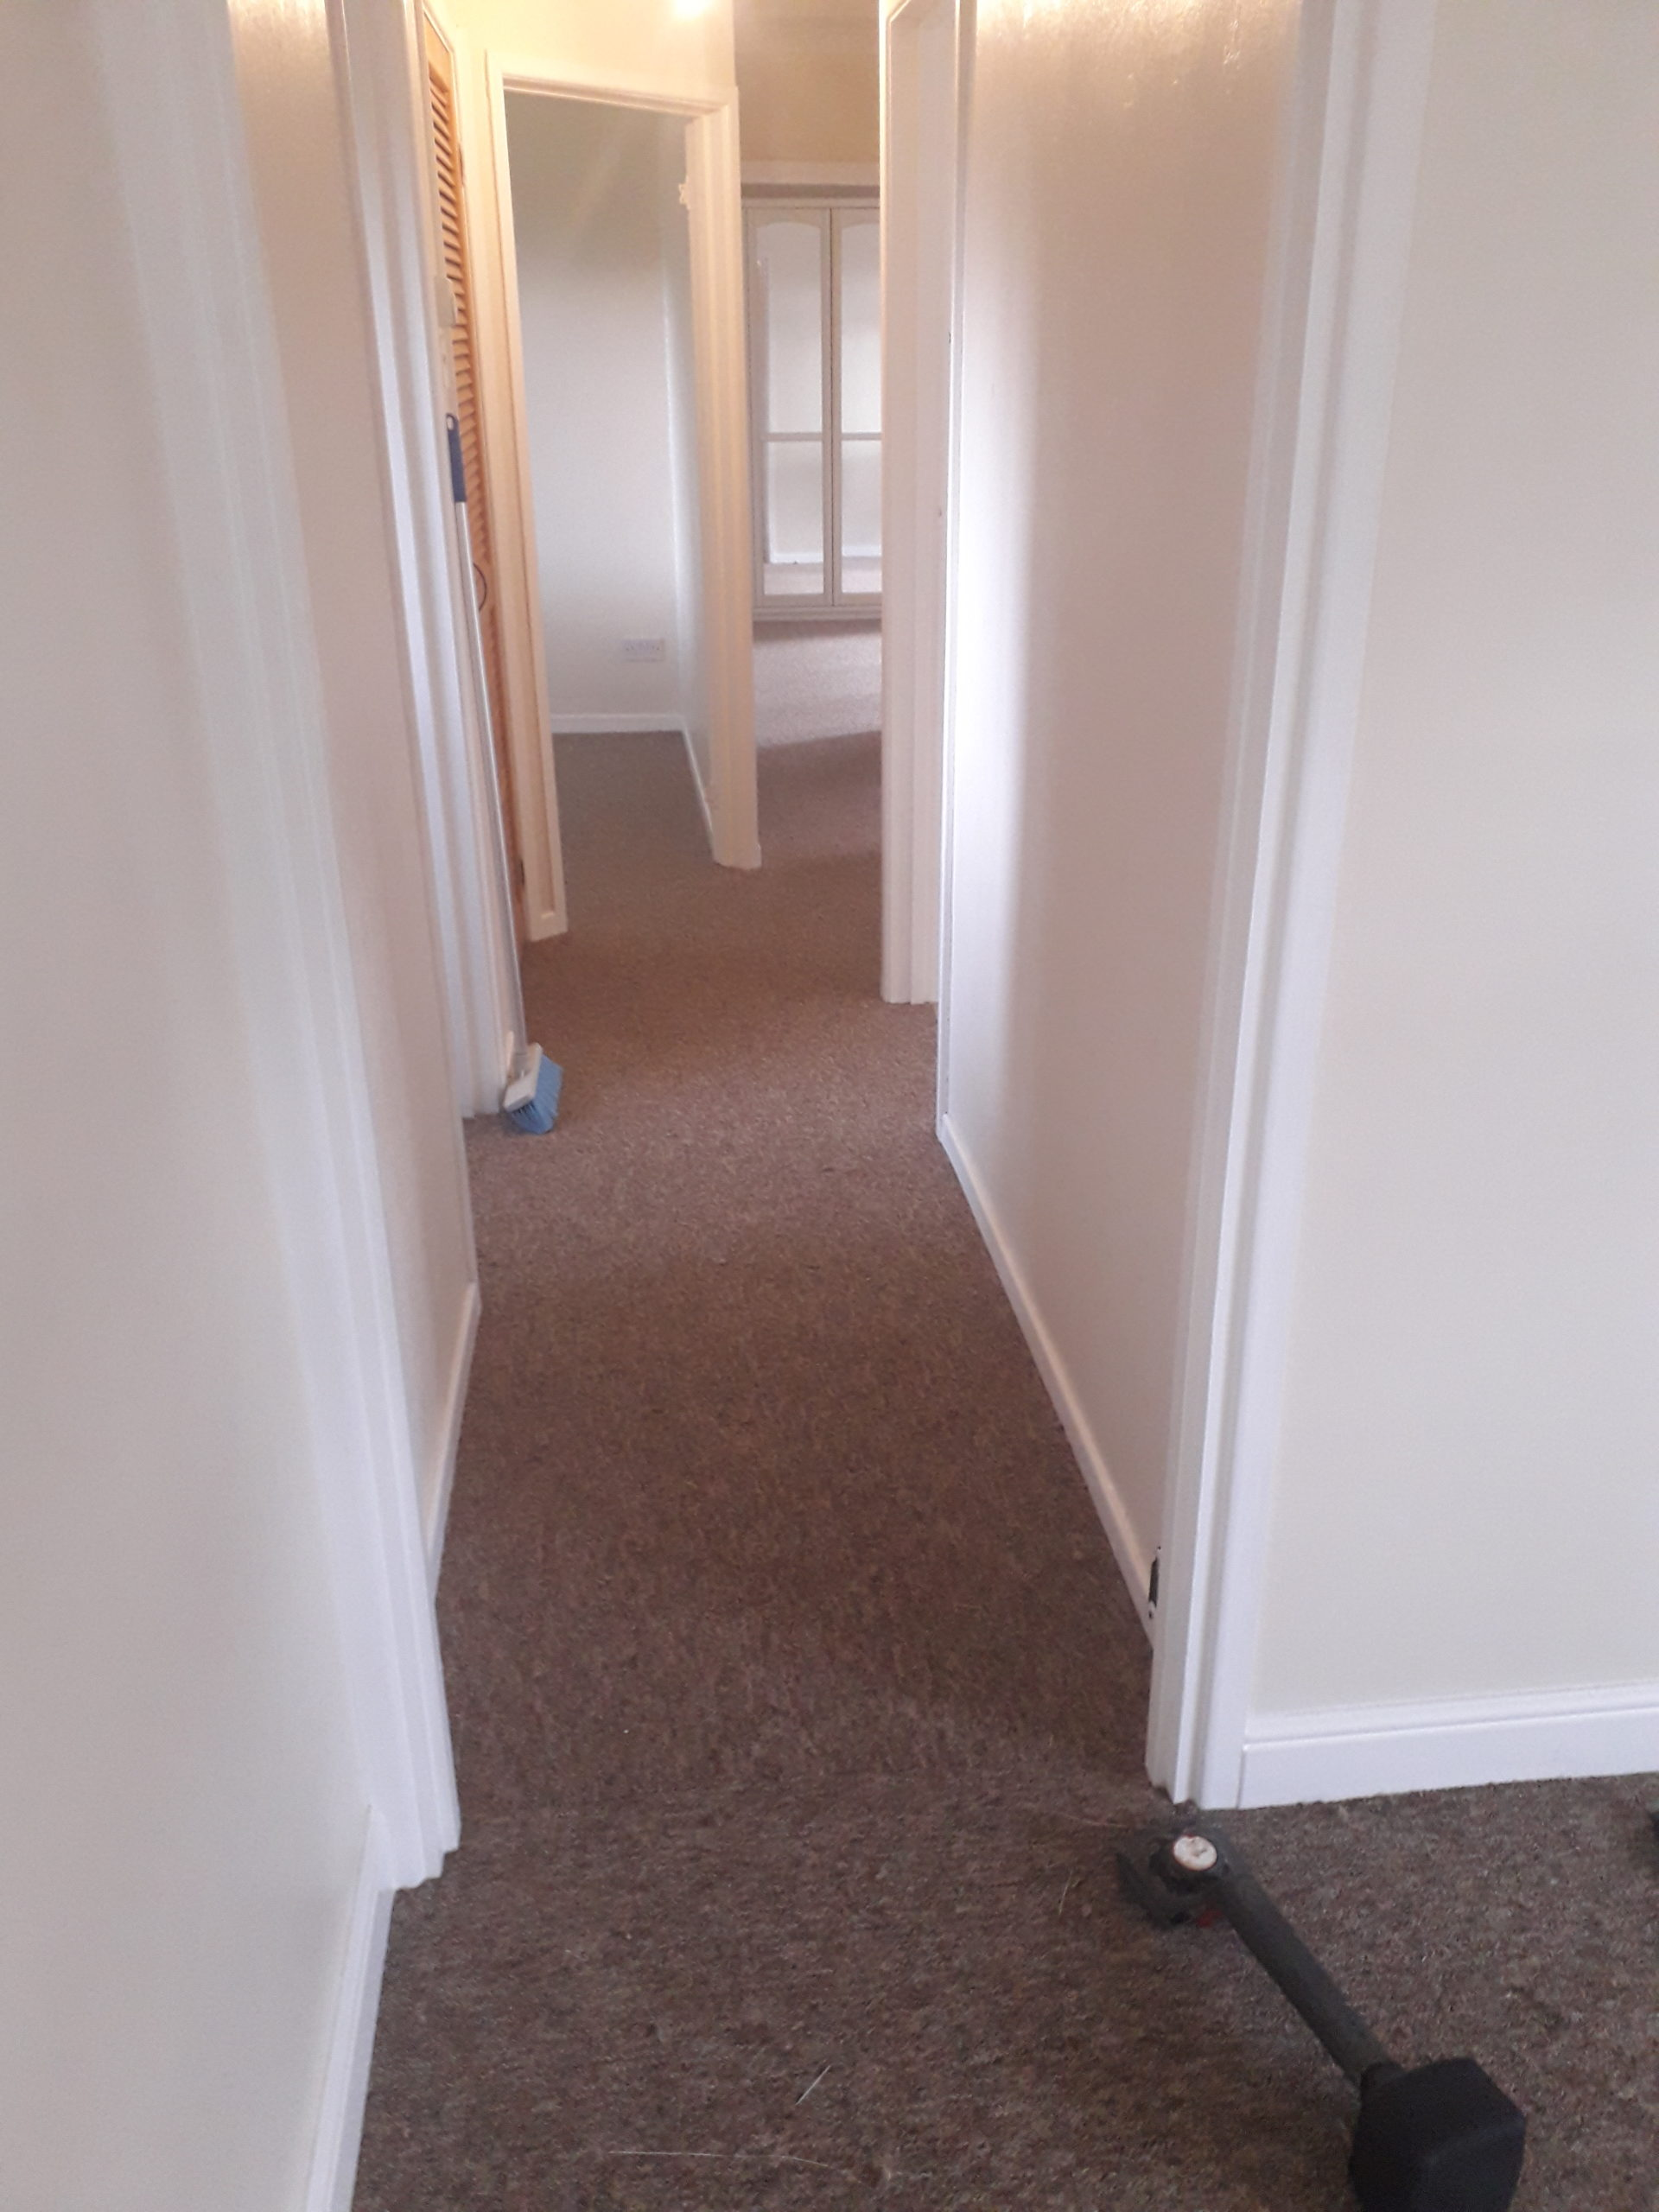 Its nice when all the doors are off and we can fit the carpet more seamlessly into each room.